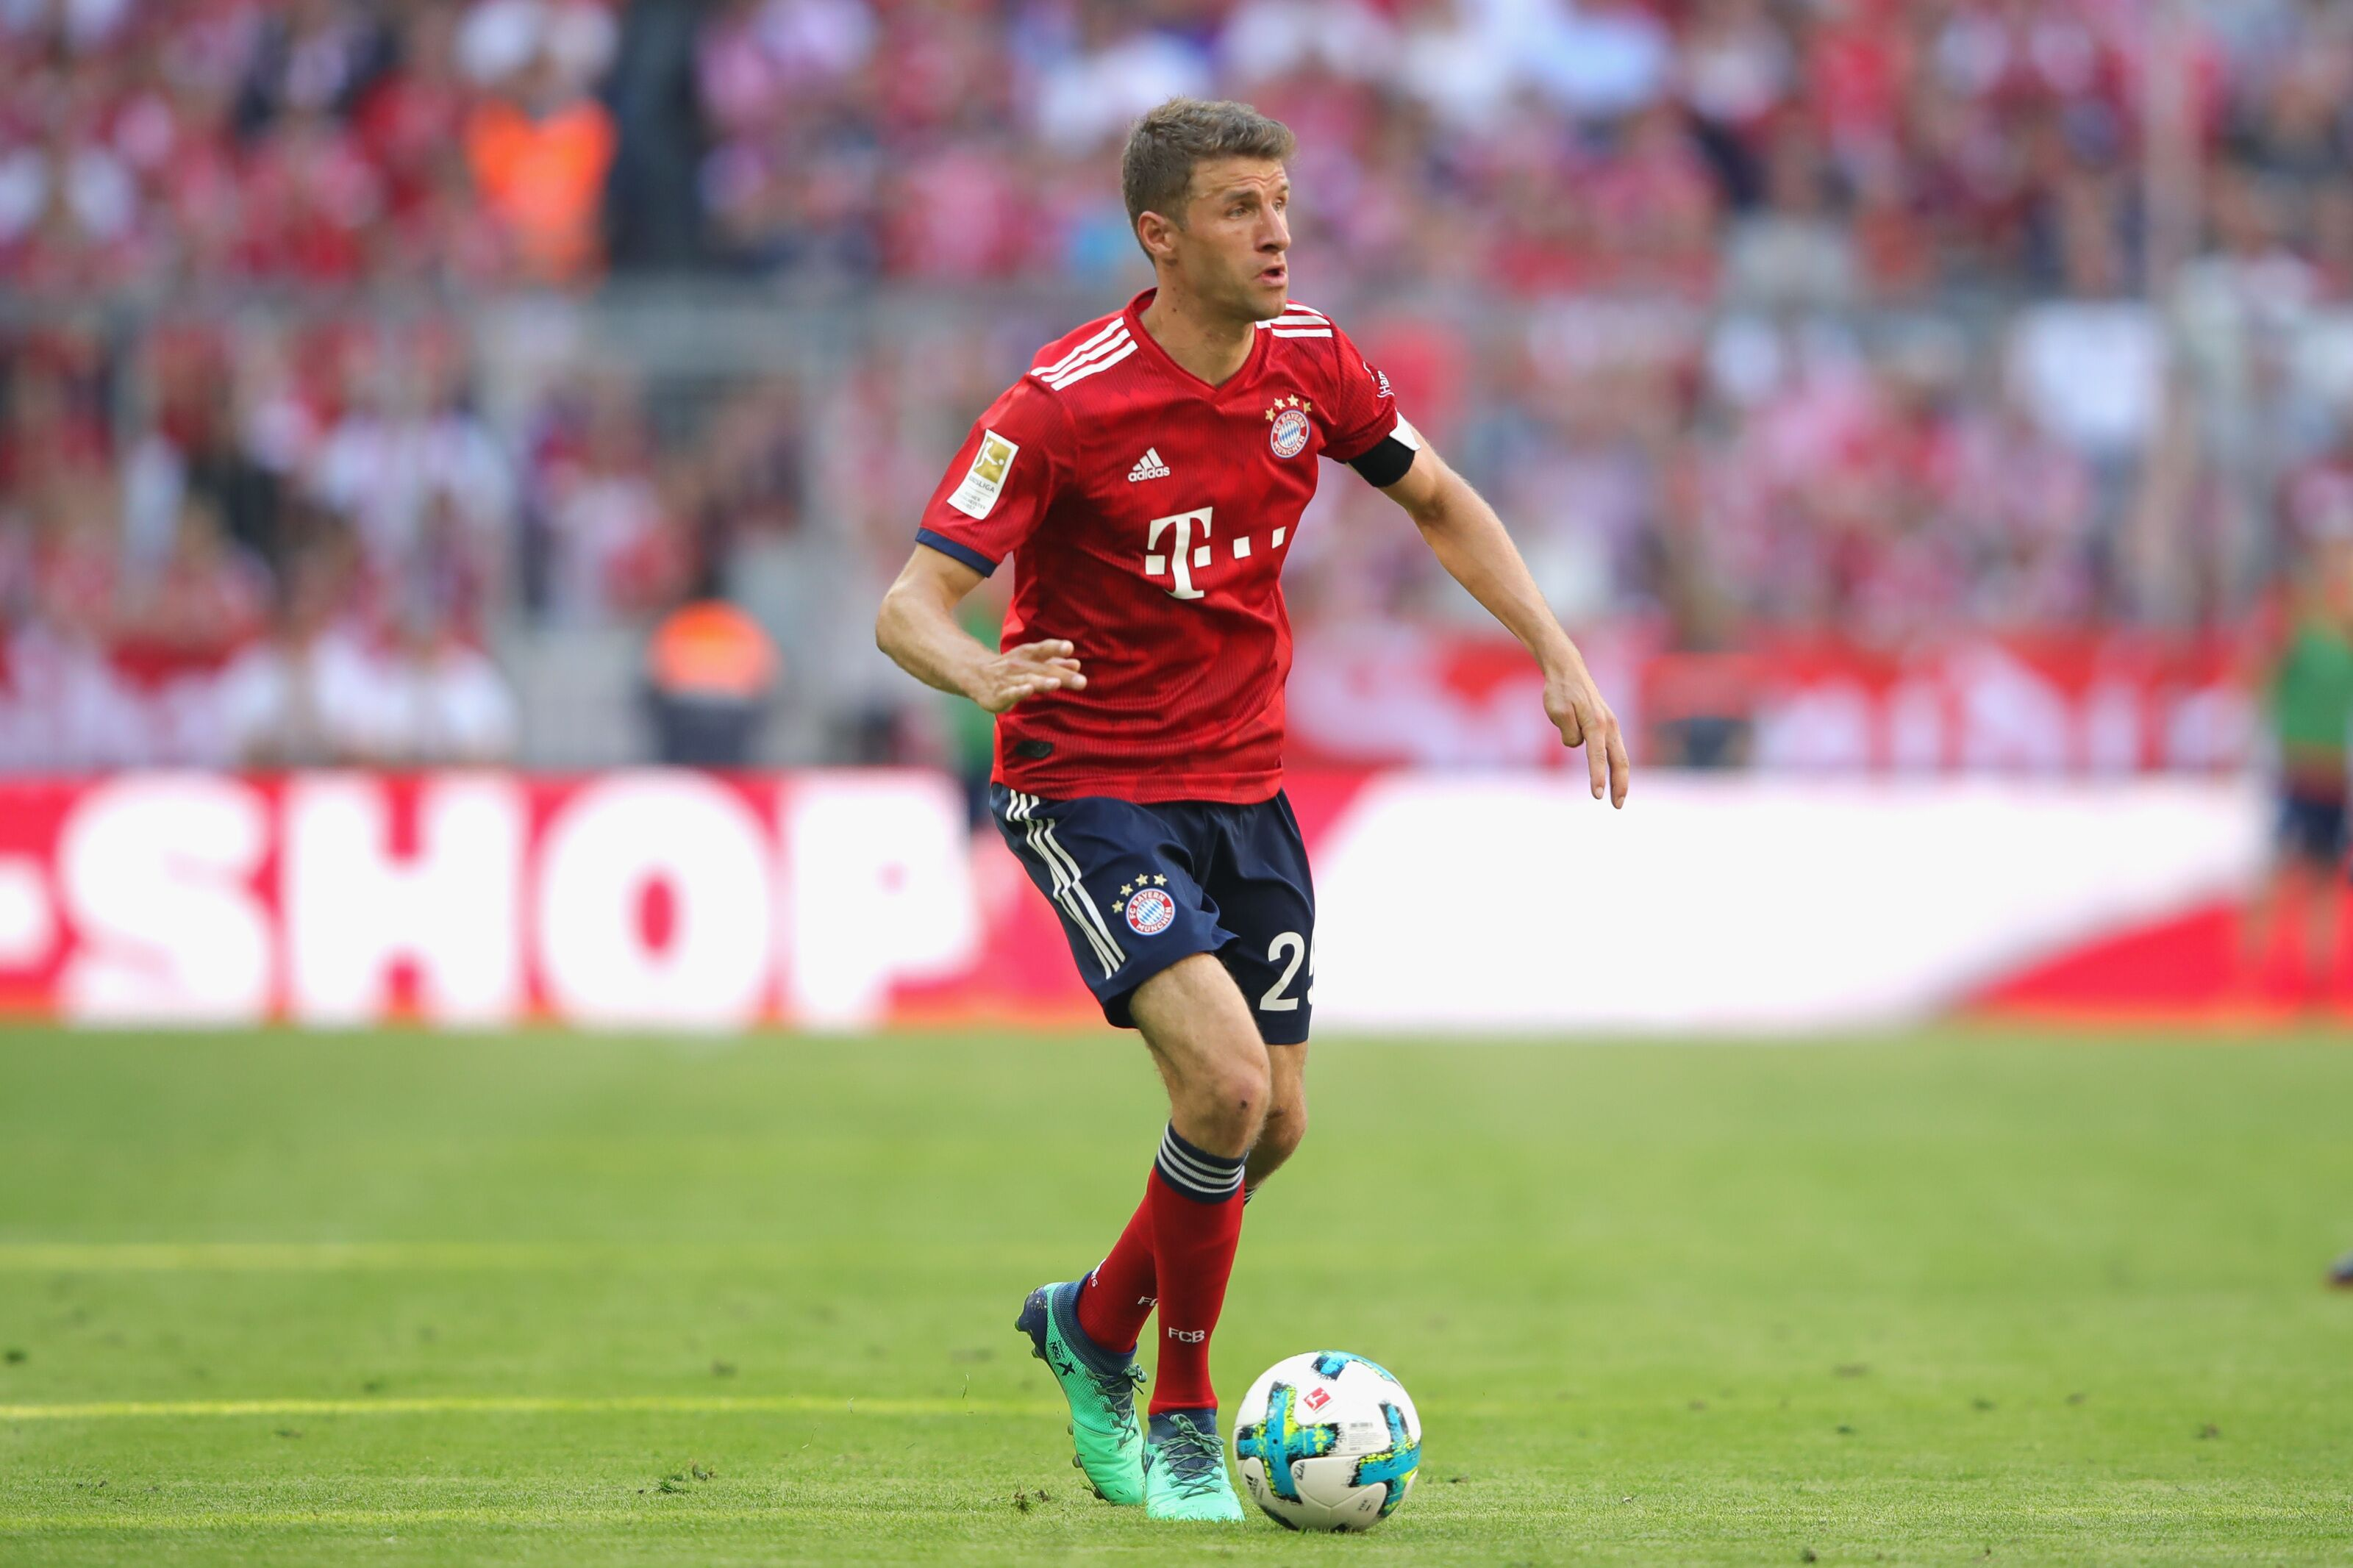 MUNICH, GERMANY - MAY 12: Thomas Mueller of FC Bayern Muenchen runs with the ball during the Bundesliga match between FC Bayern Muenchen and VfB Stuttgart at Allianz Arena on May 12, 2018 in Munich, Germany. (Photo by Alexander Hassenstein/Bongarts/Getty Images)